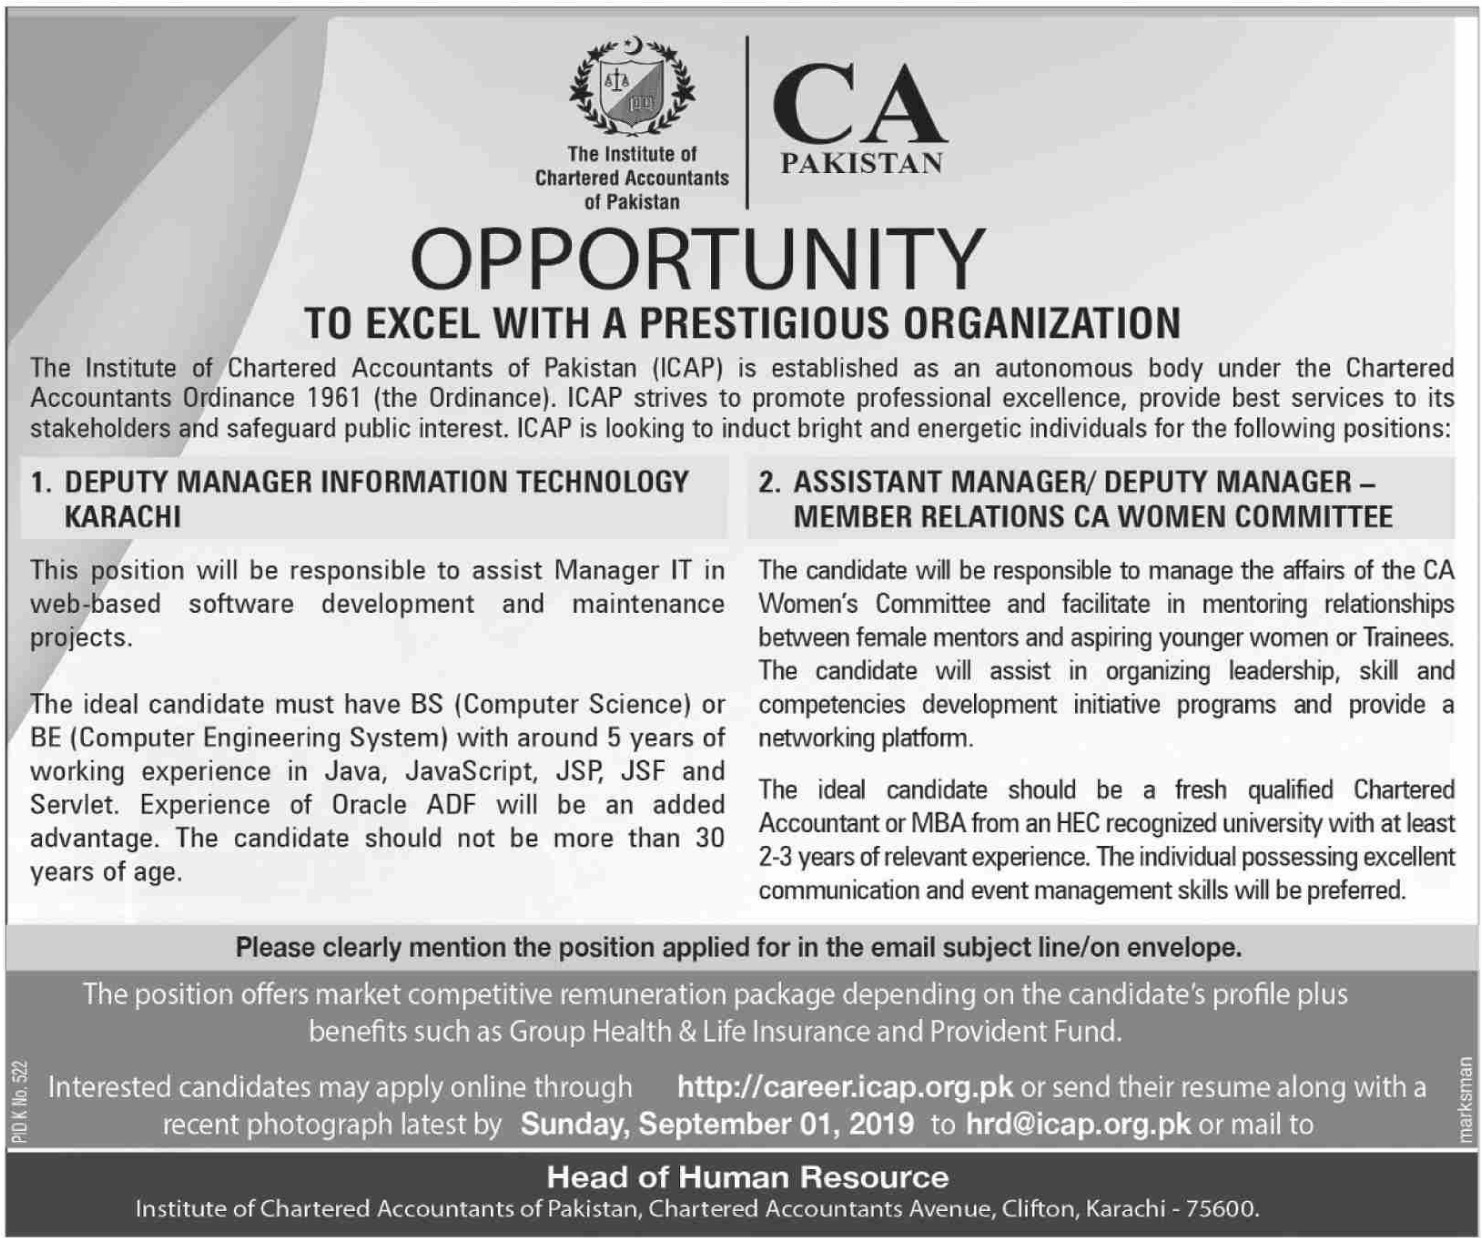 Institute of Chartered Accountants of Pakistan ICAP Jobs 2019 Apply Online